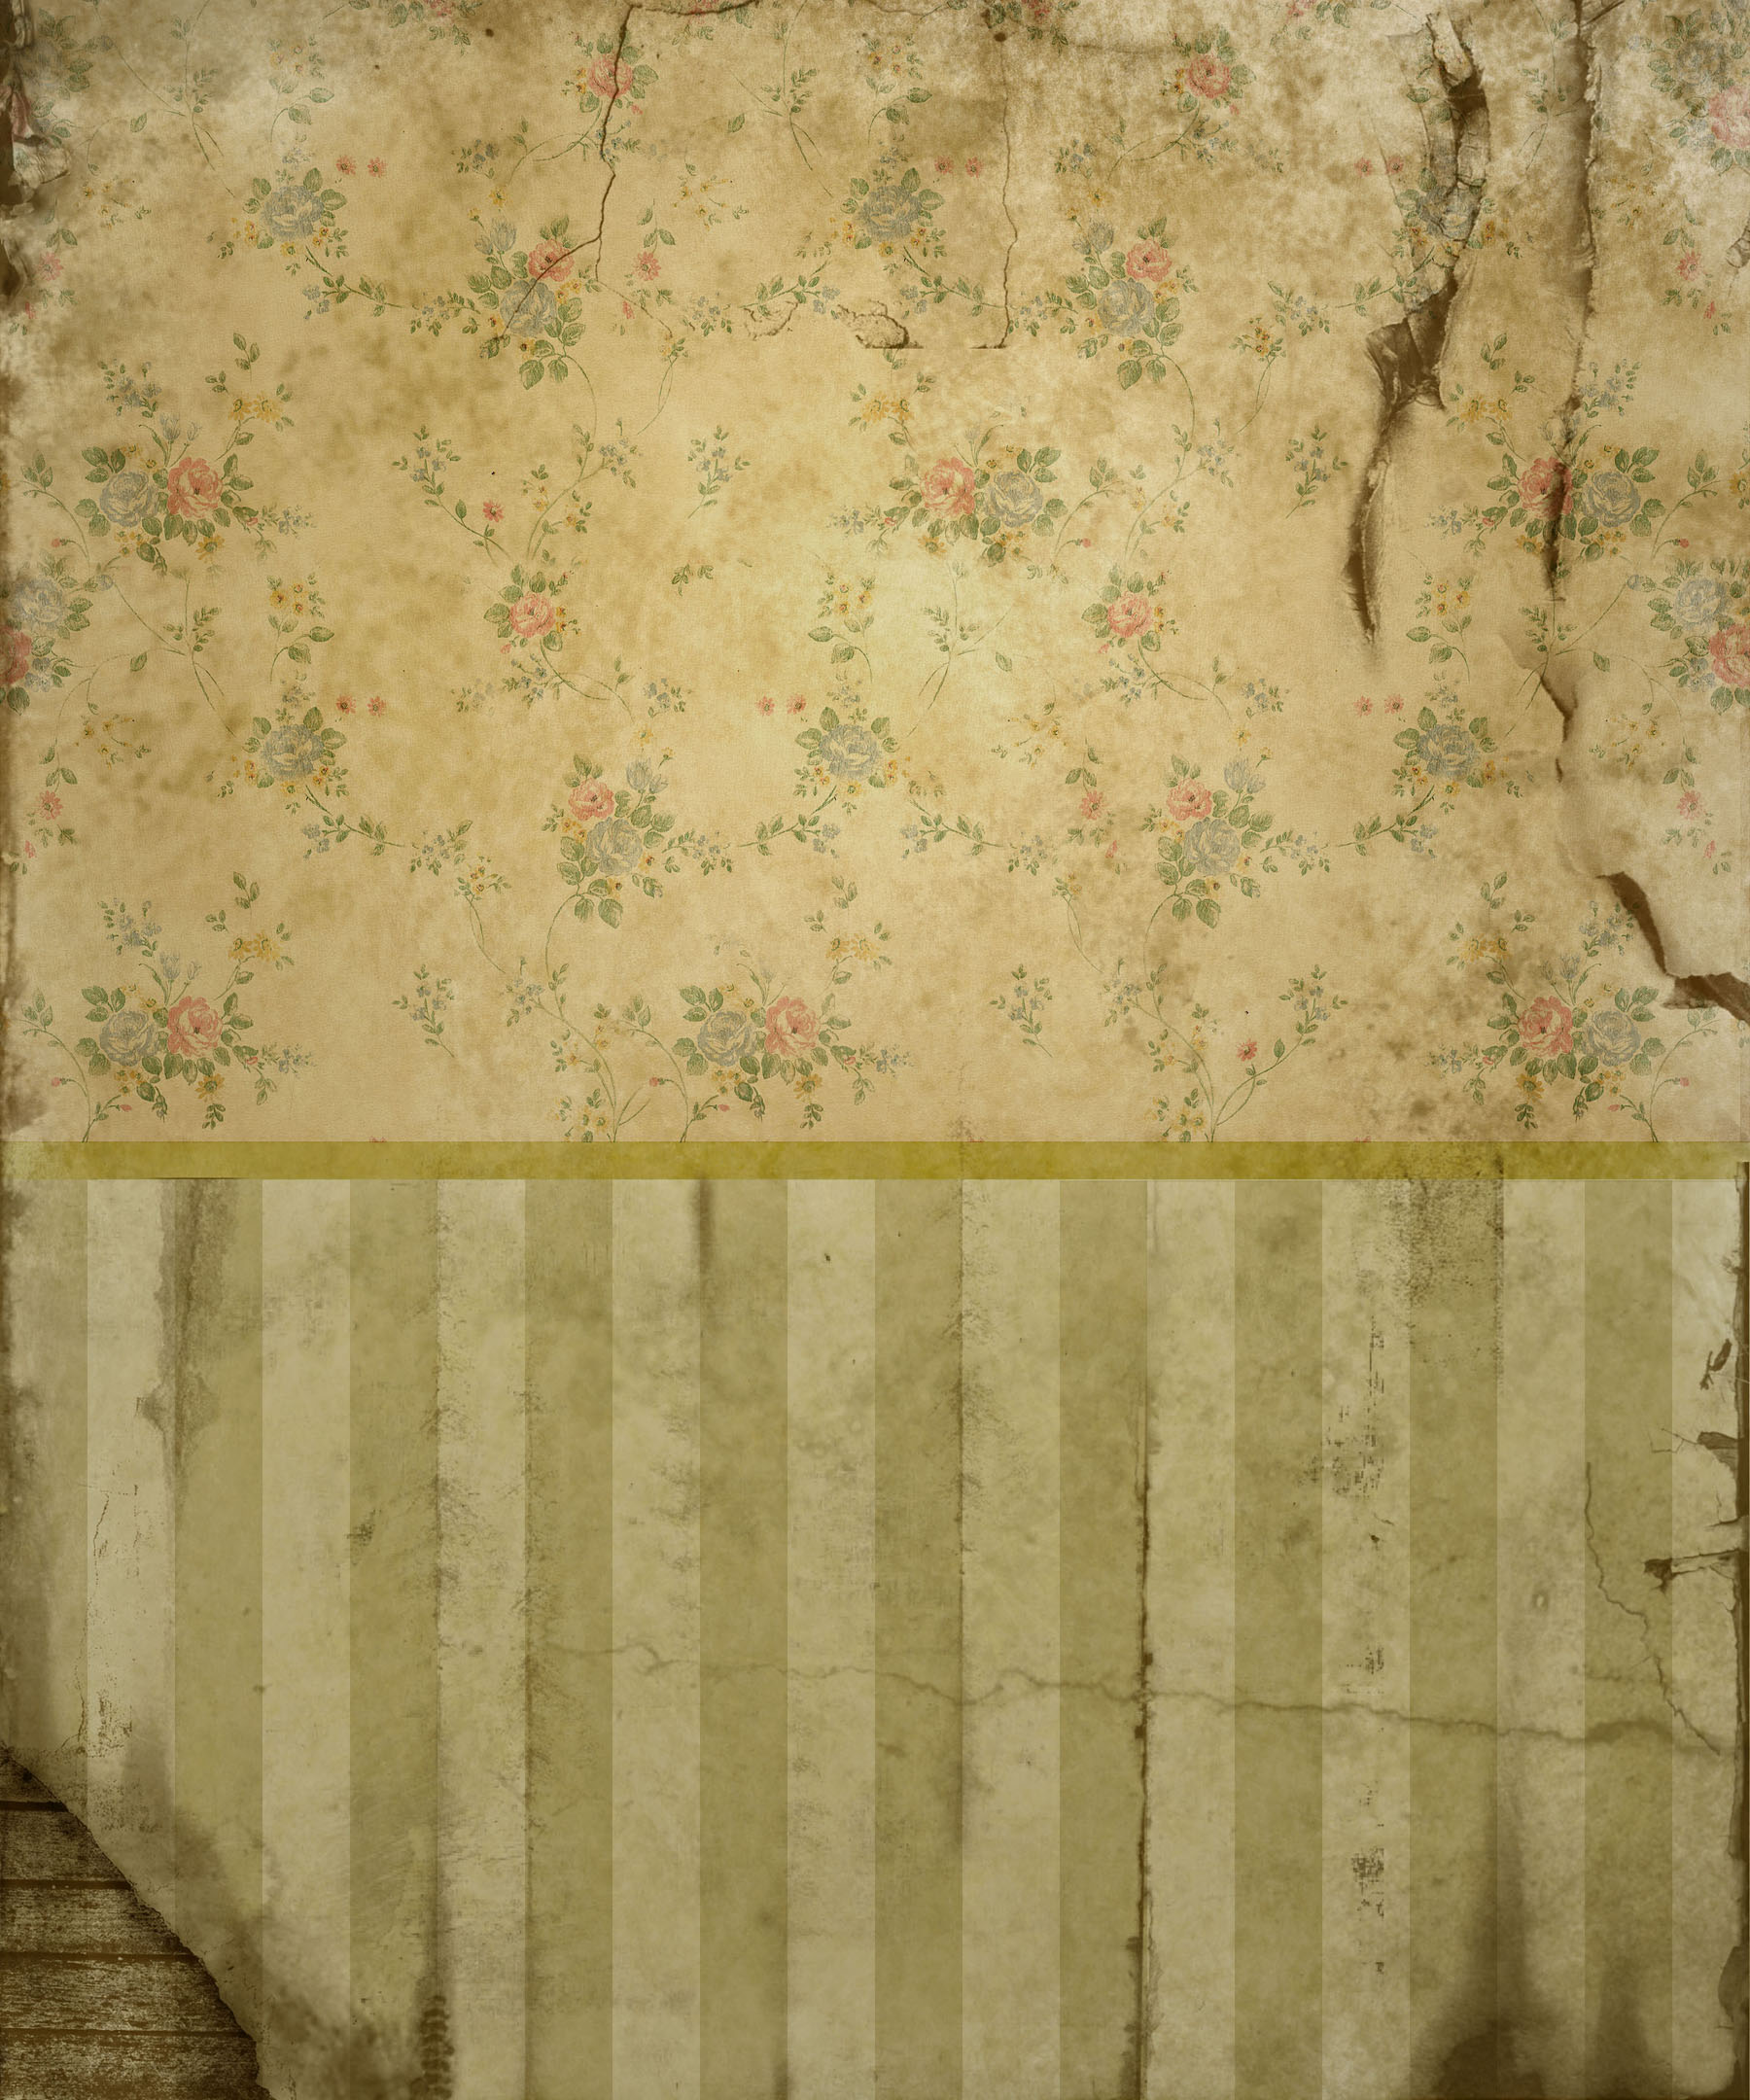 Old European-style Wall Wallpaper - Old Paper Wall Texture - HD Wallpaper